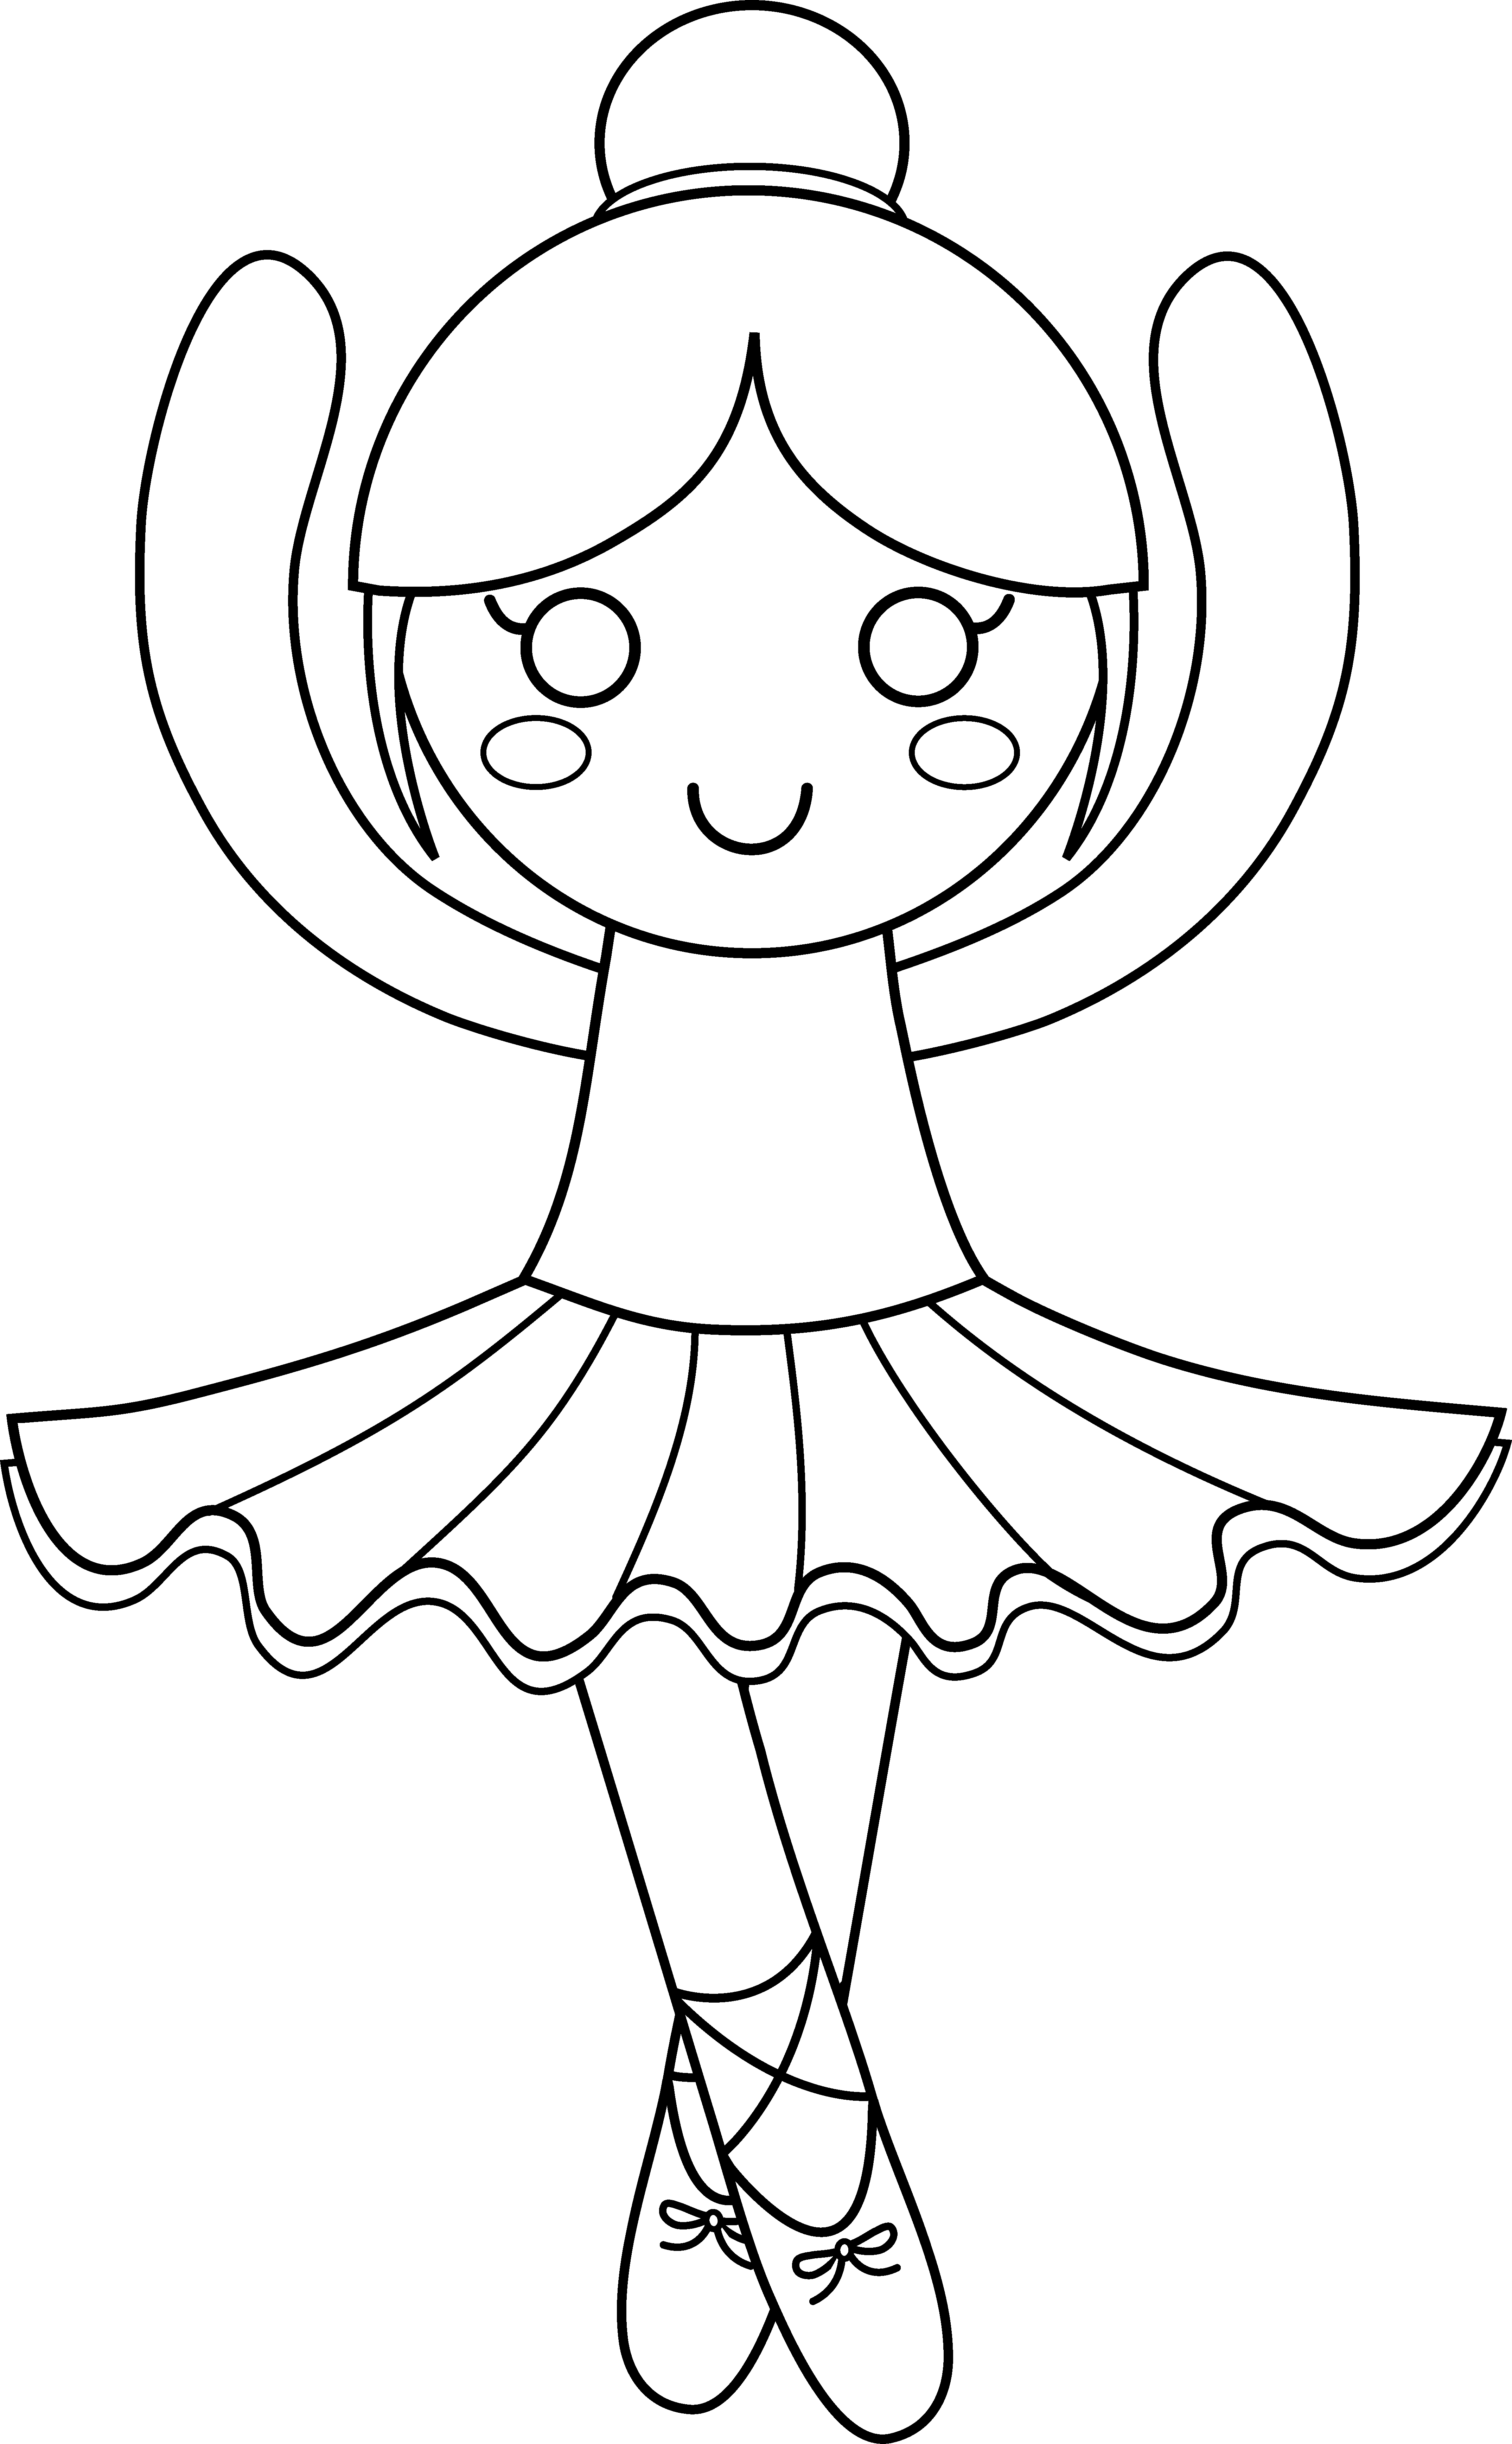 coloring pages of little girls the best free coloring pages for girls coloring girls of little pages